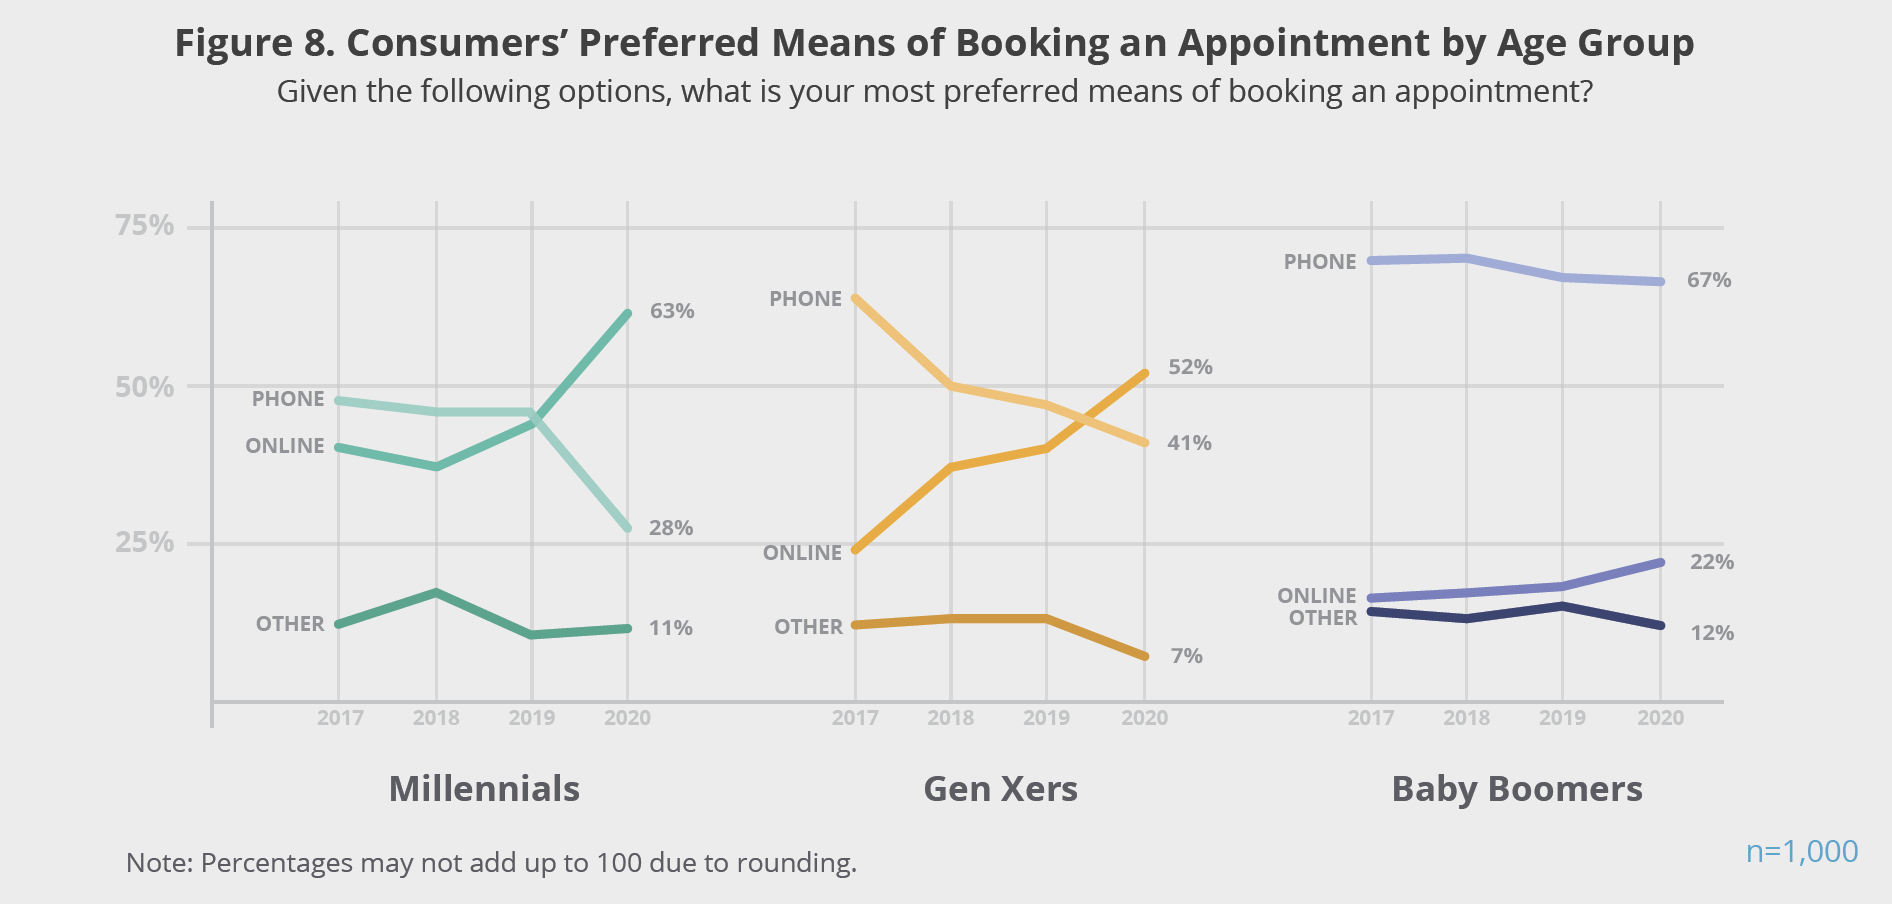 Figure 8. Consumers' Preferred Means of Booking an Appointment by Age Group